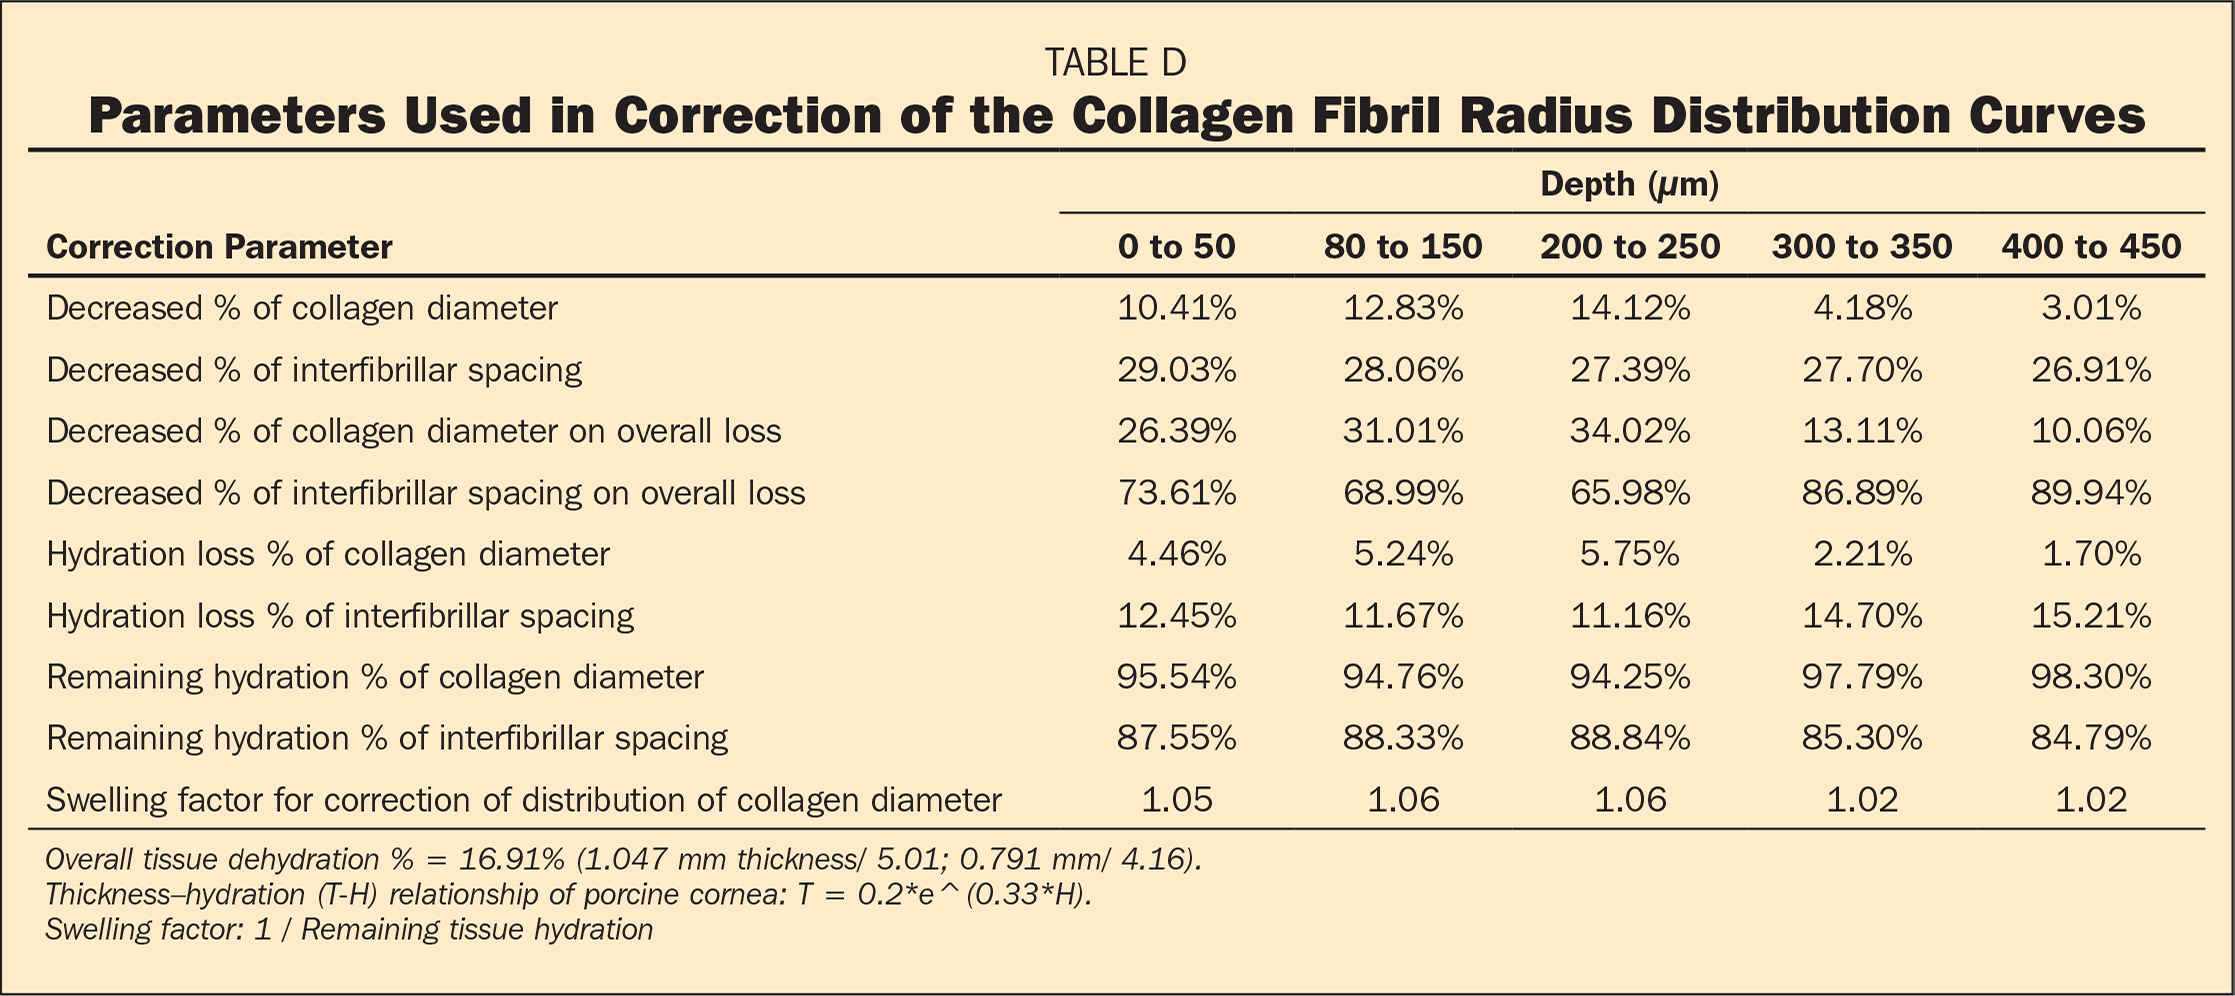 Parameters Used in Correction of the Collagen Fibril Radius Distribution Curves